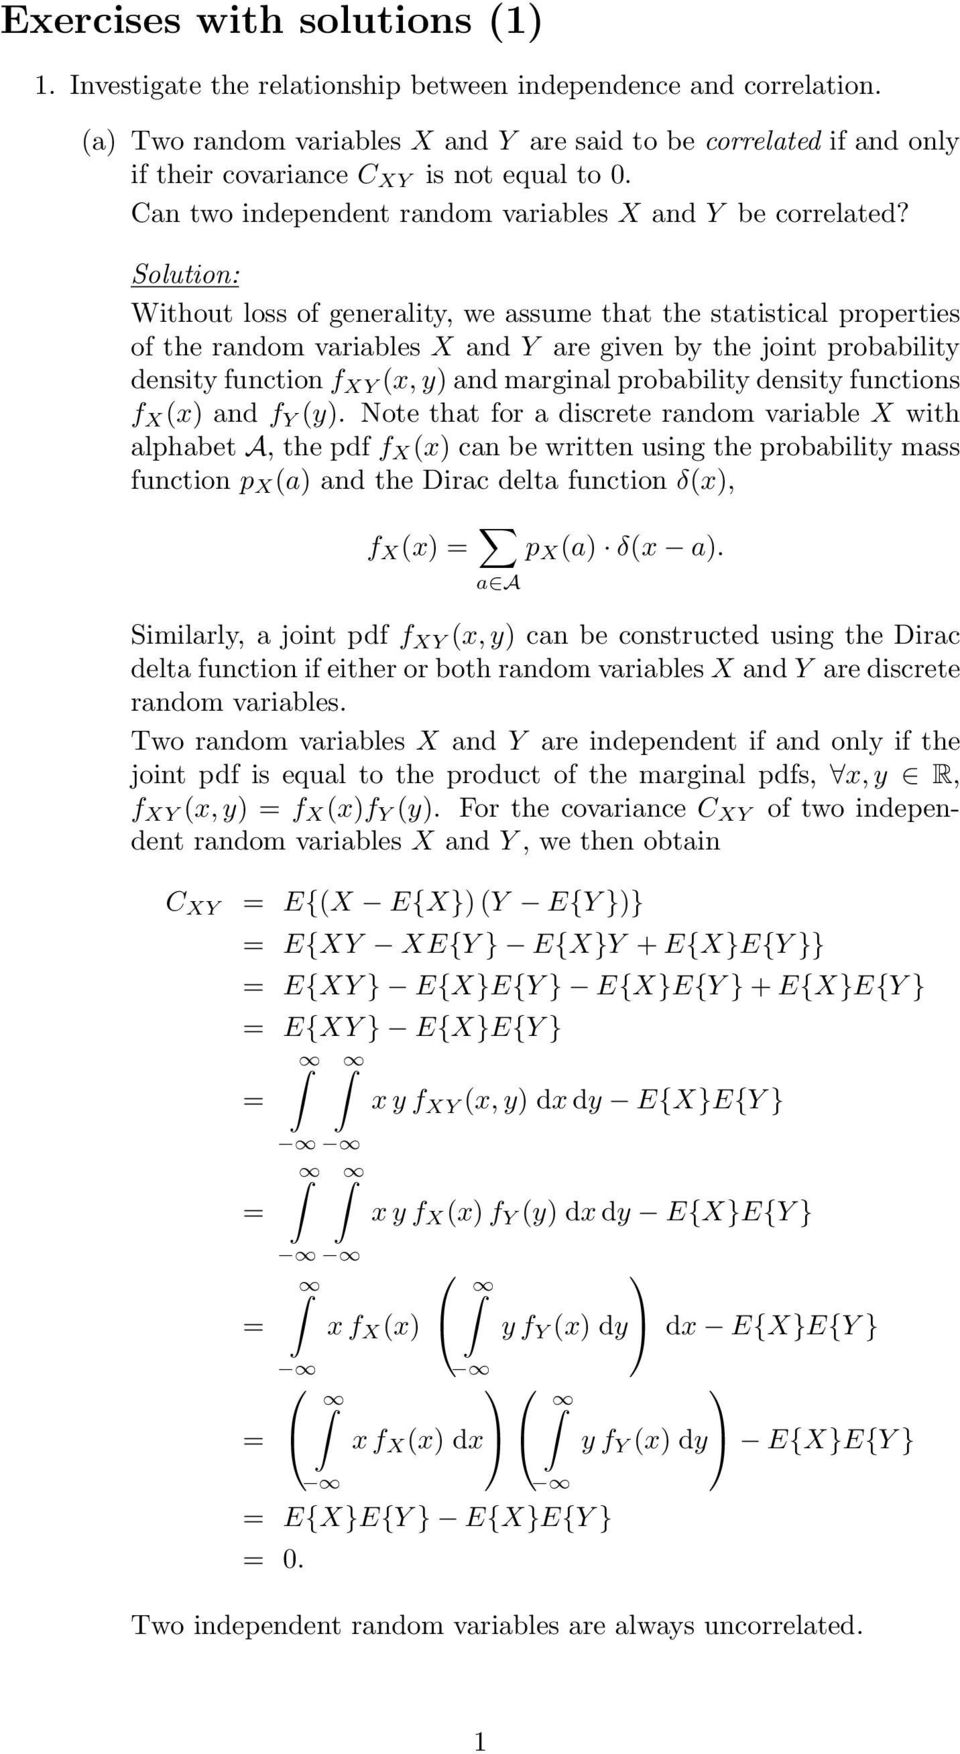 Without loss of generality, we assume that the statistical properties of the random variables X and Y are given by the joint probability density function f XY (x, y) and marginal probability density